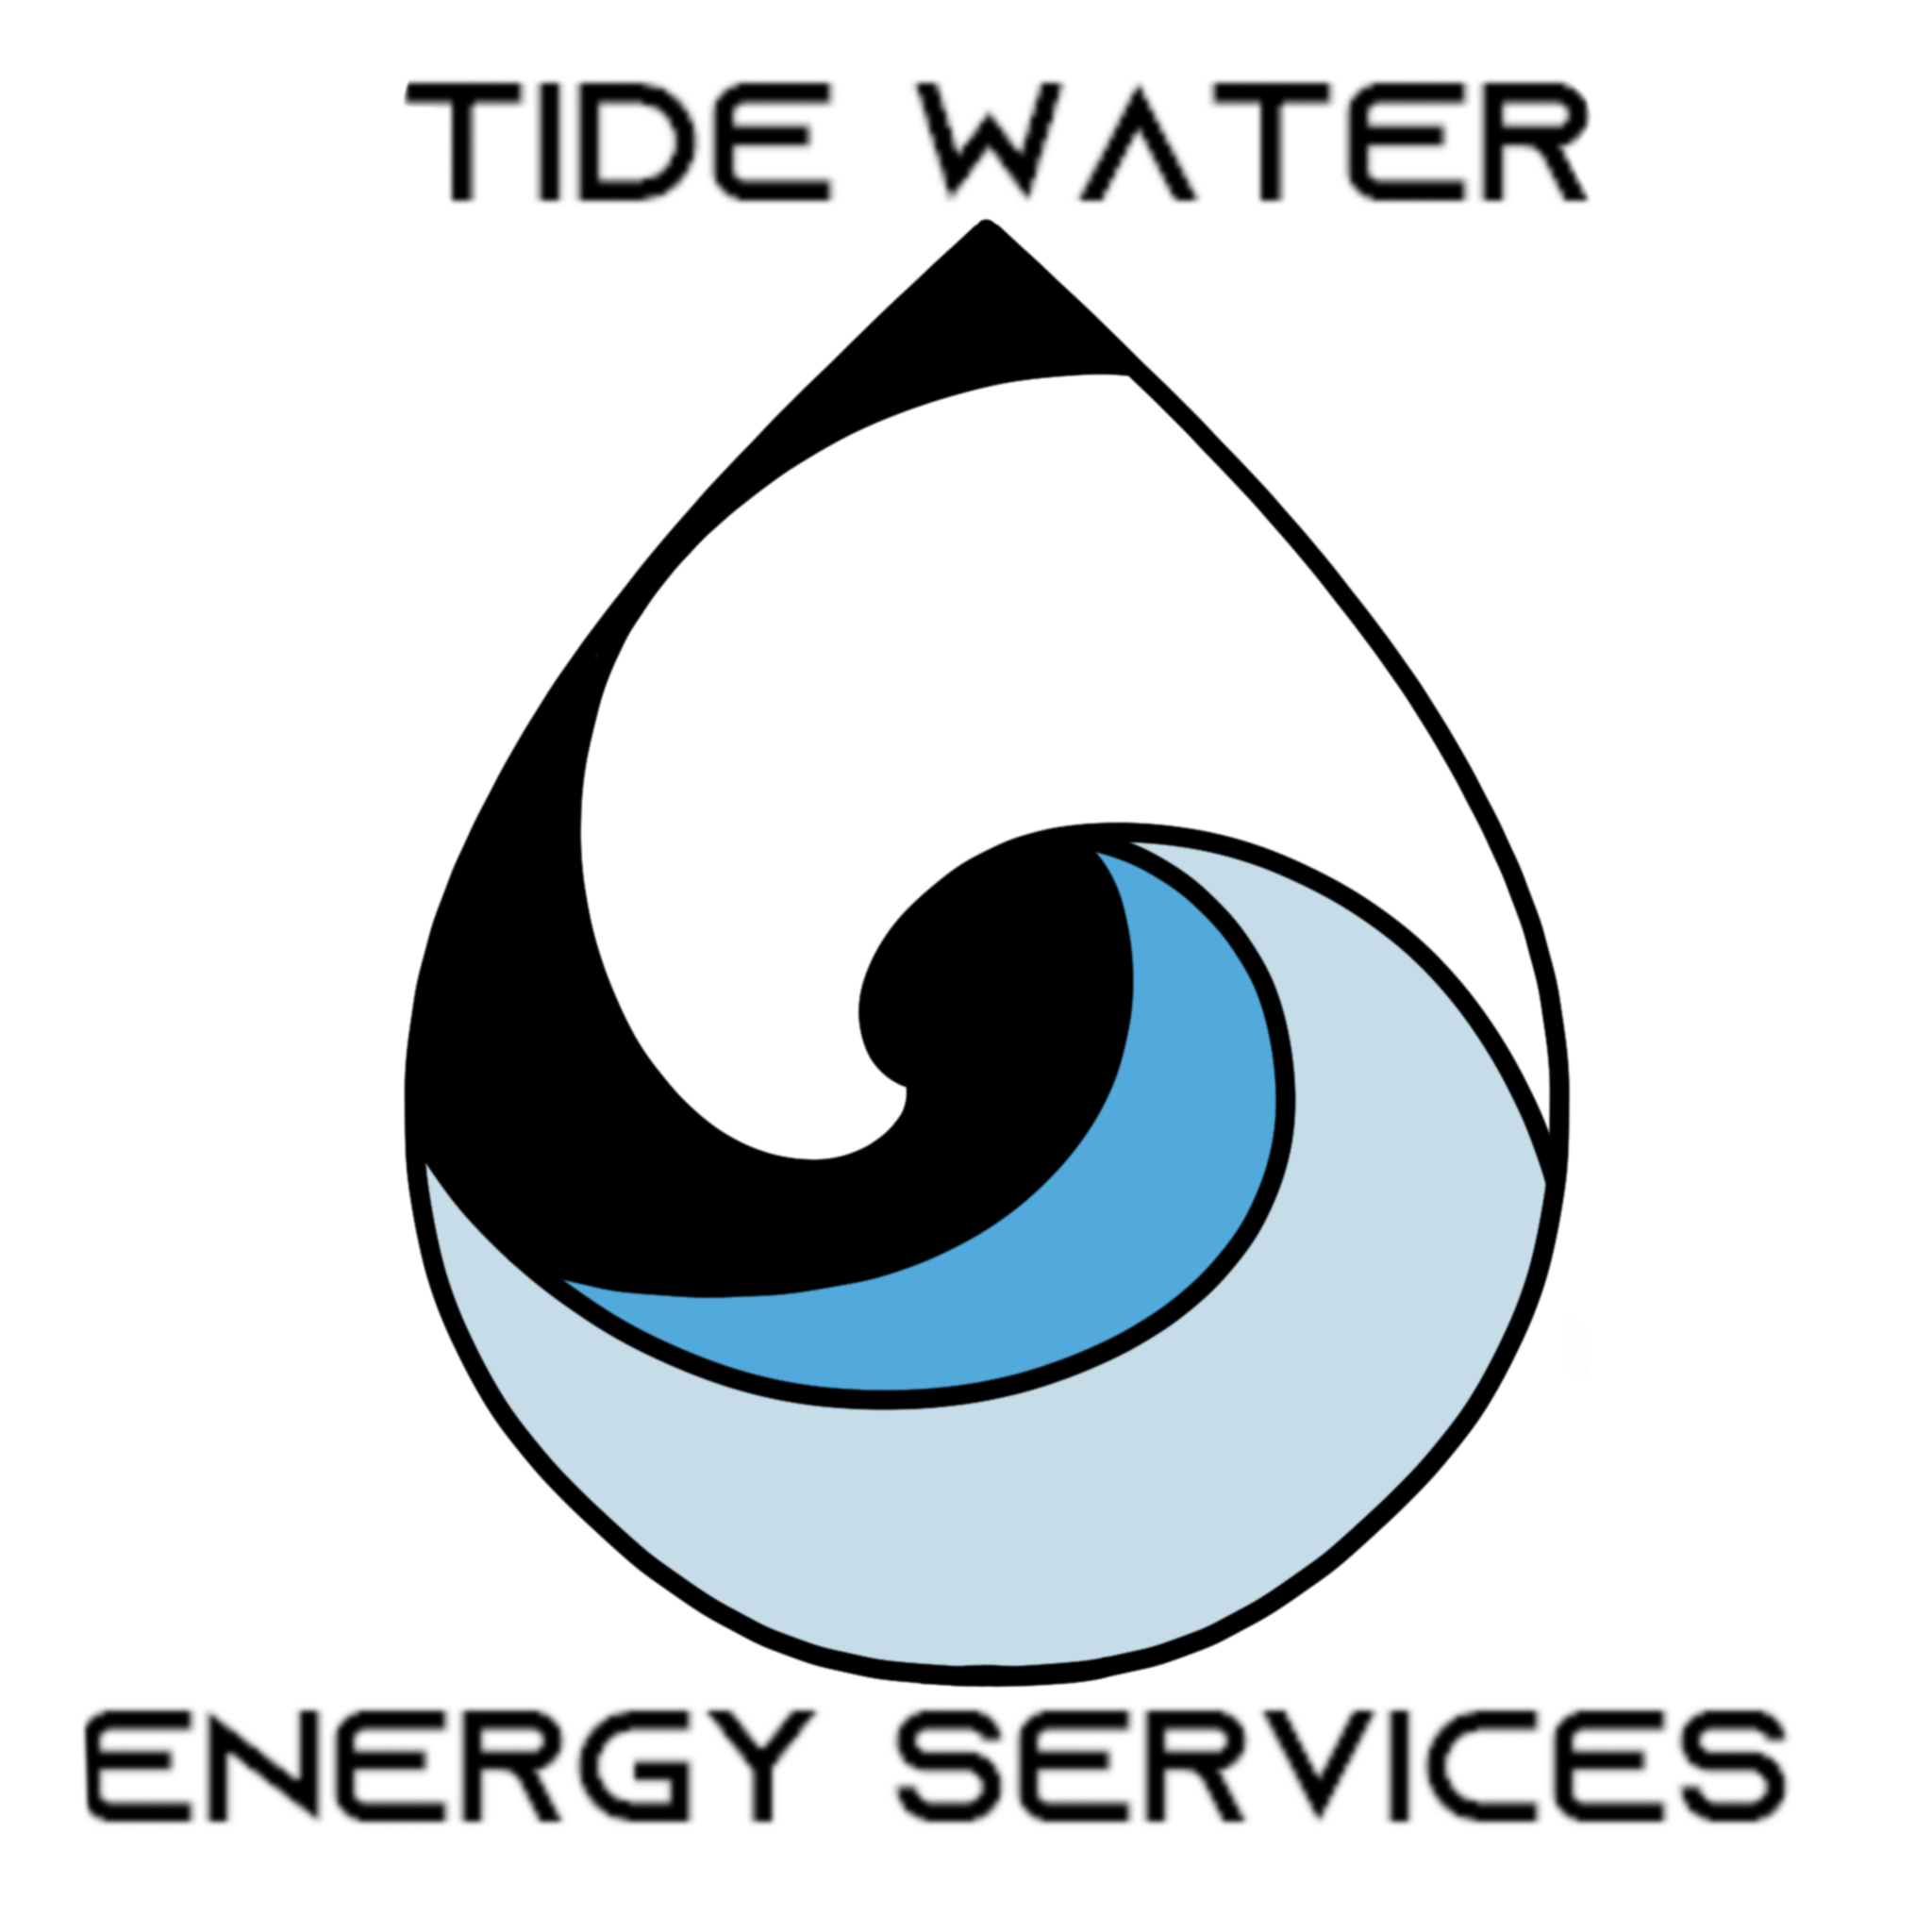 Tide Water Energy Services